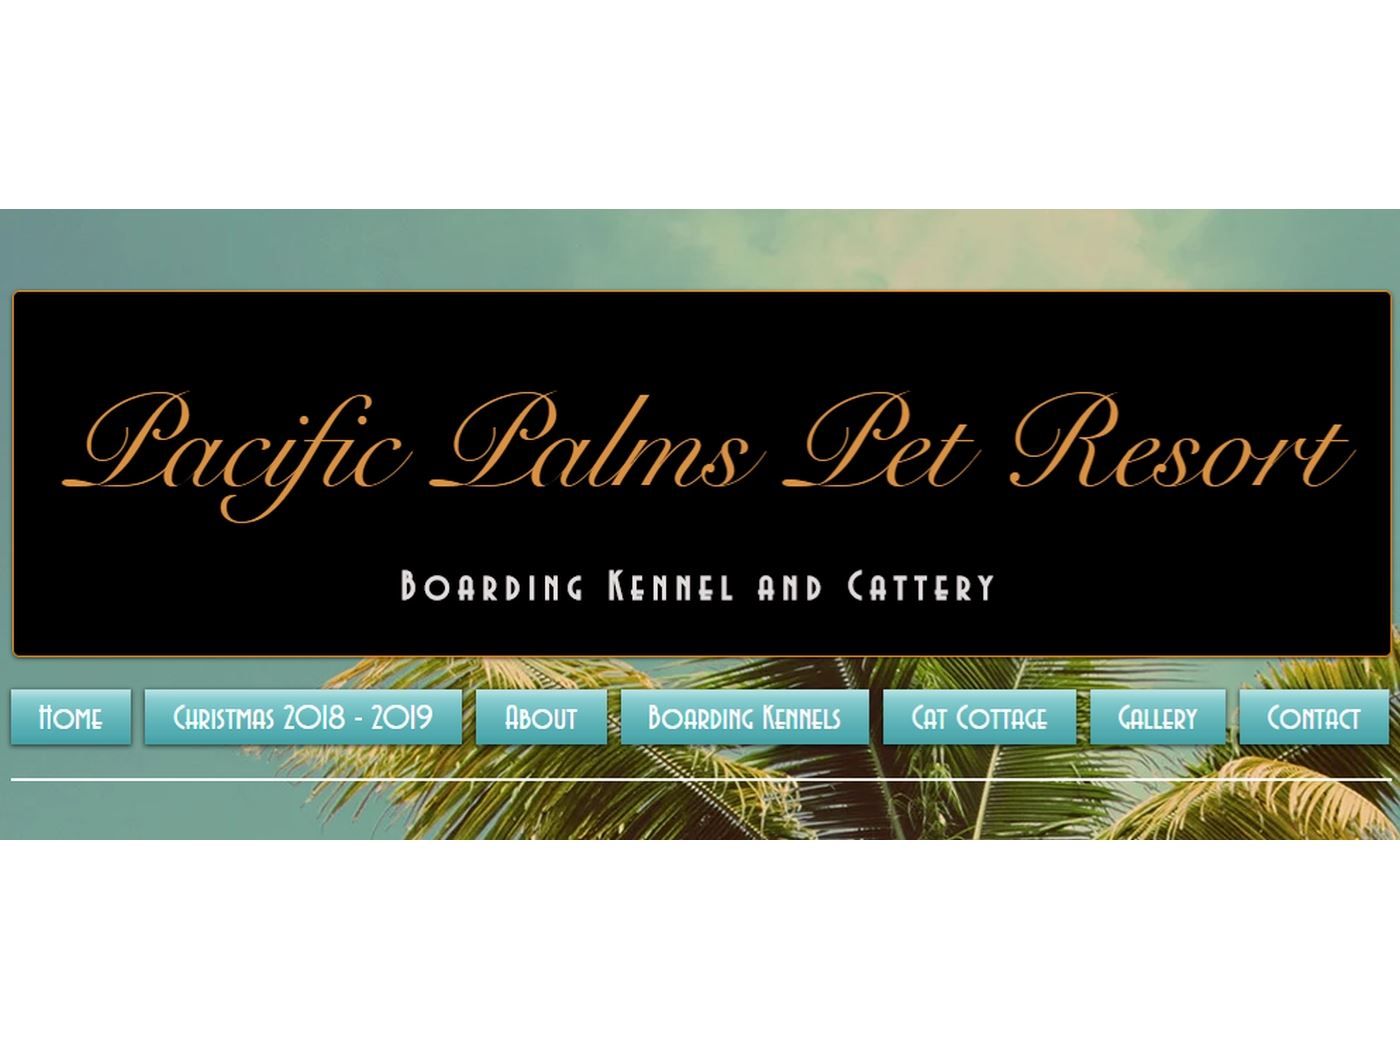 Pacific Palms Pet Resort